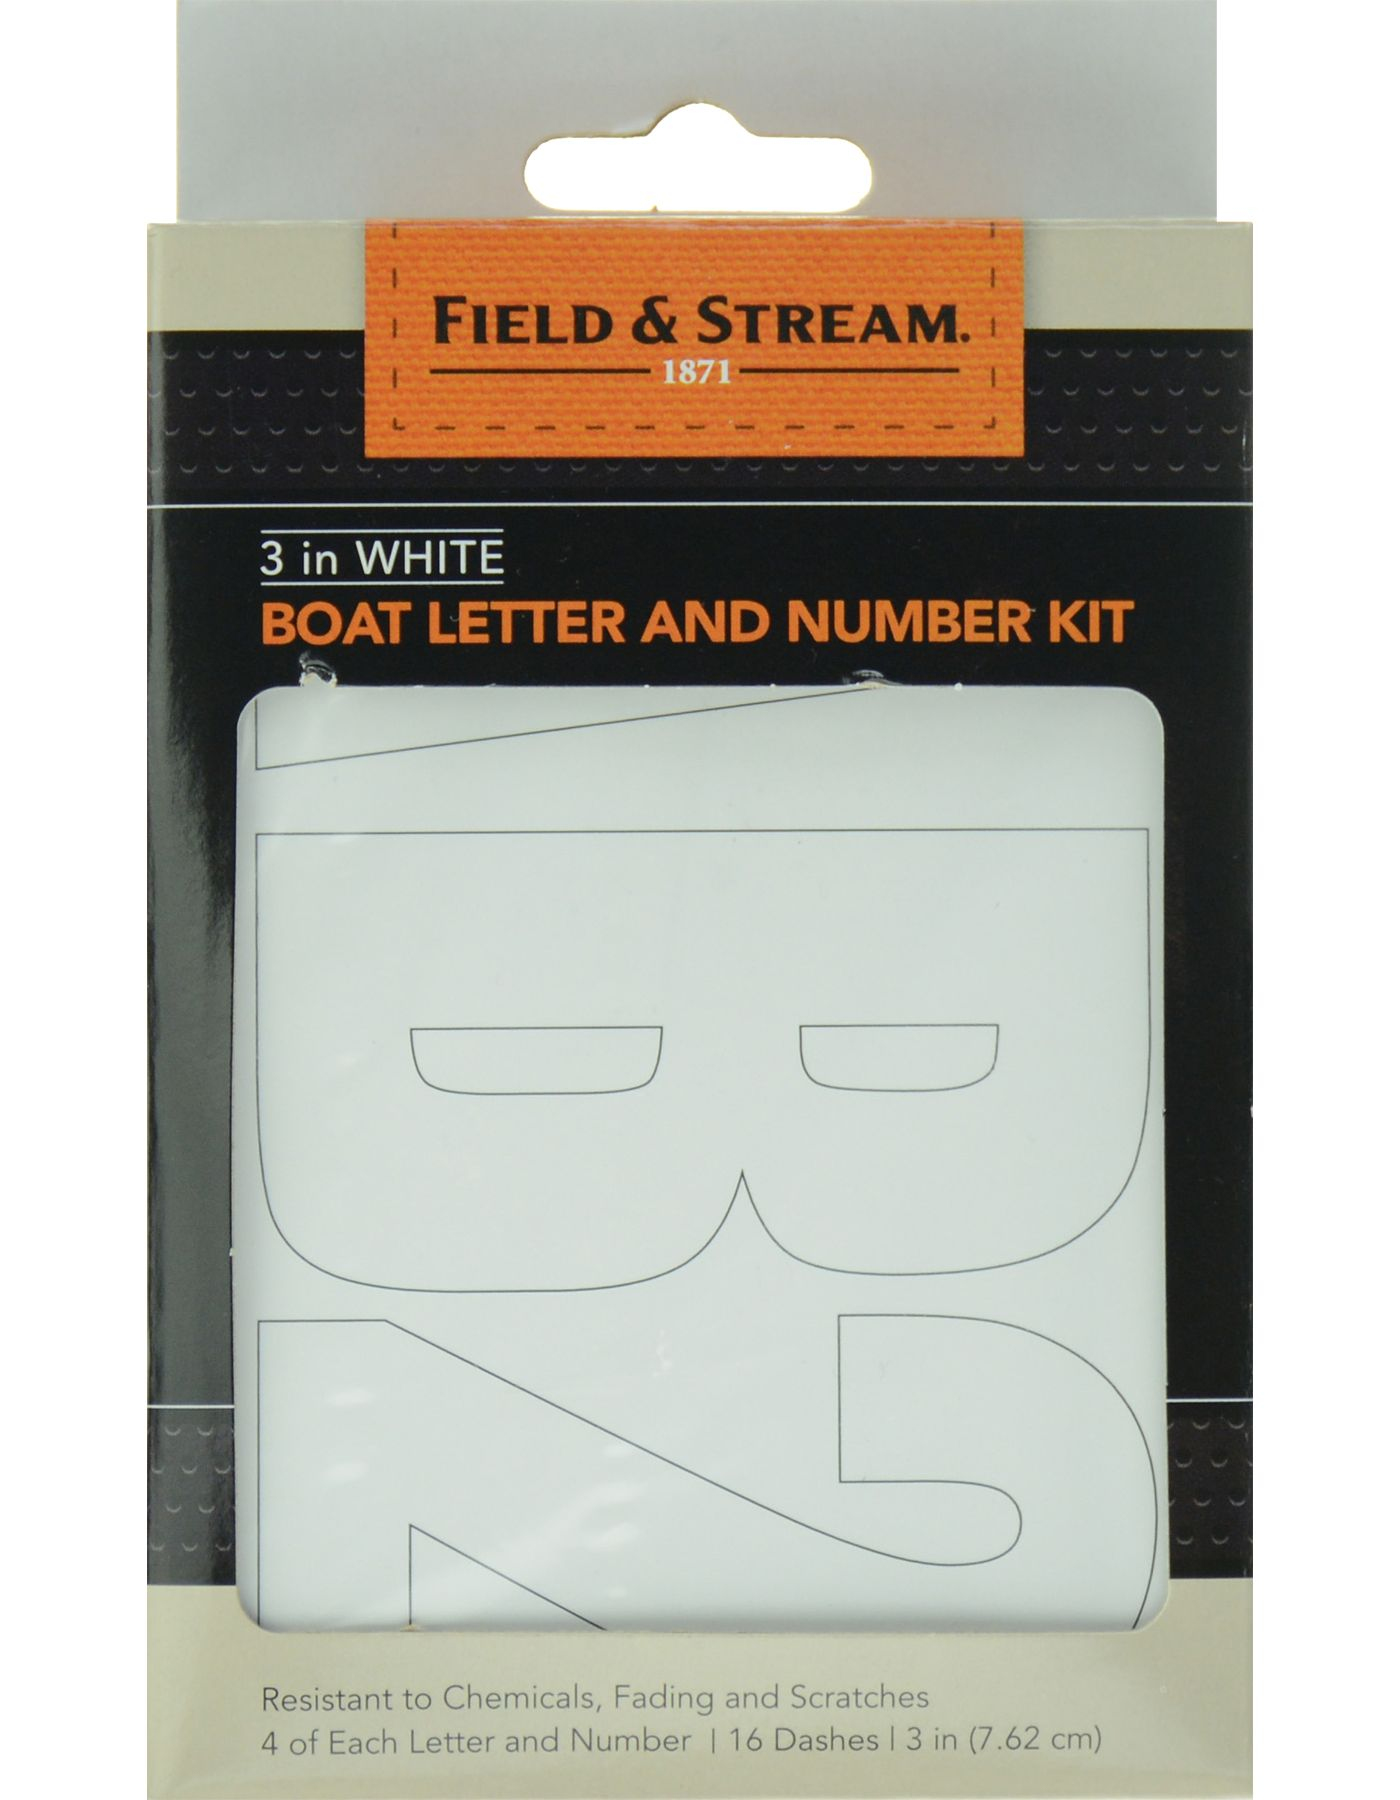 Field & Stream Boat Letter and Number Kit